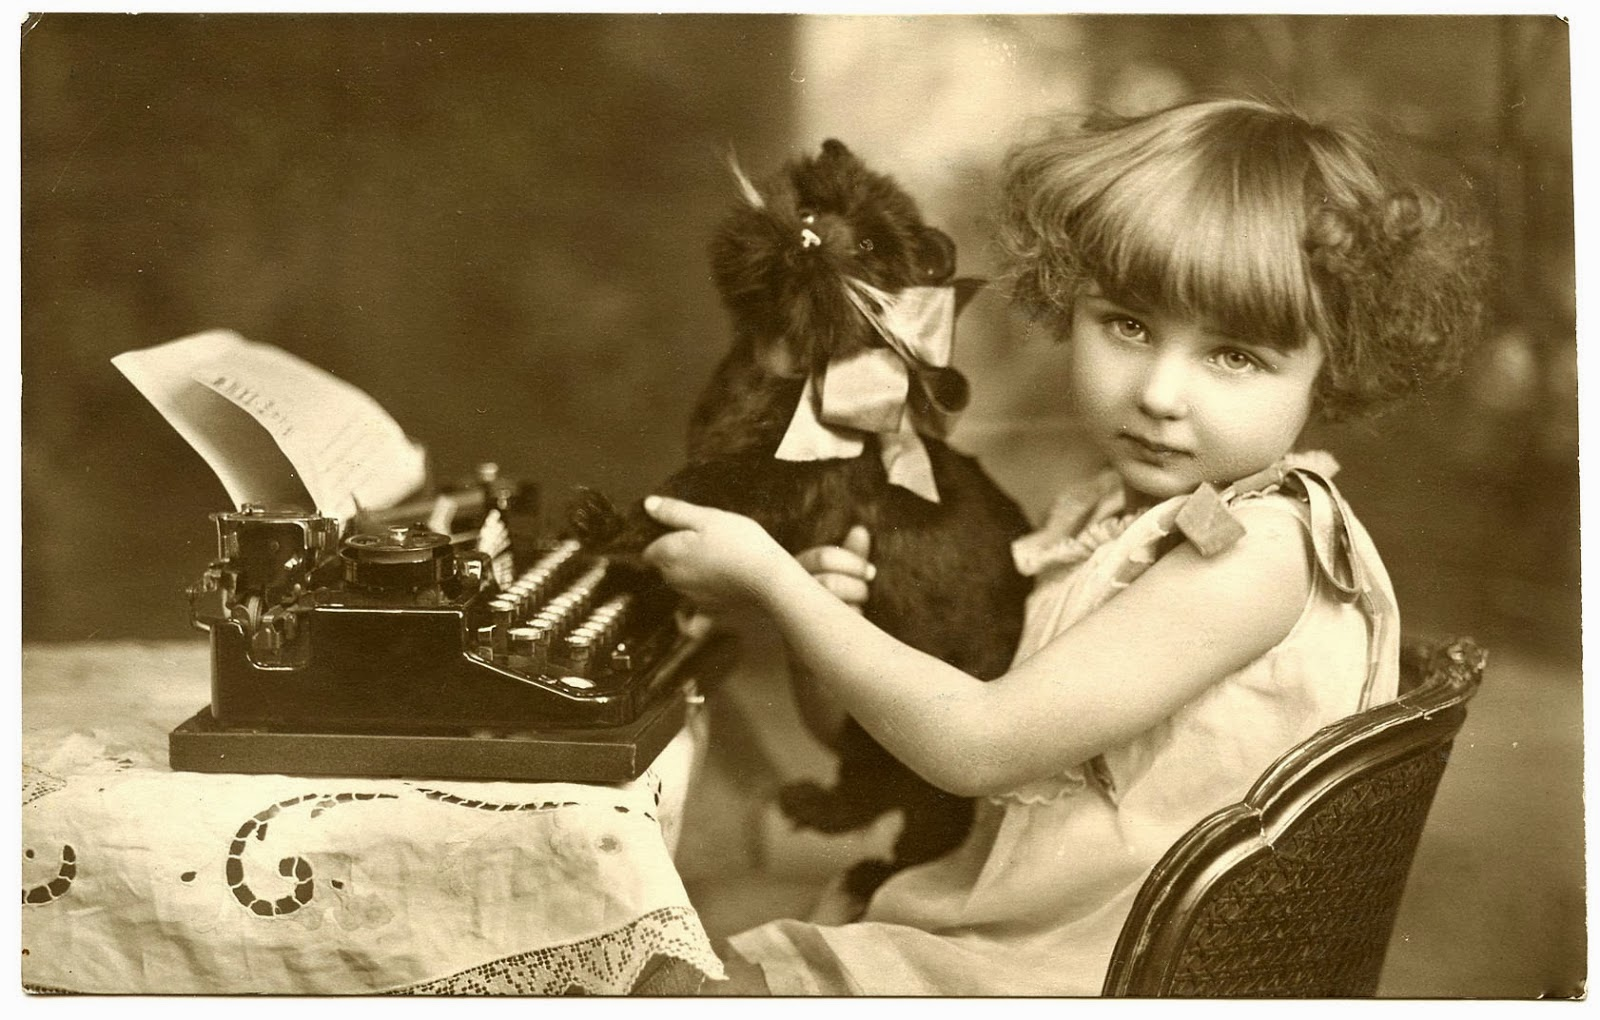 Vintage image of girl and cat plushy in front of typewriter.